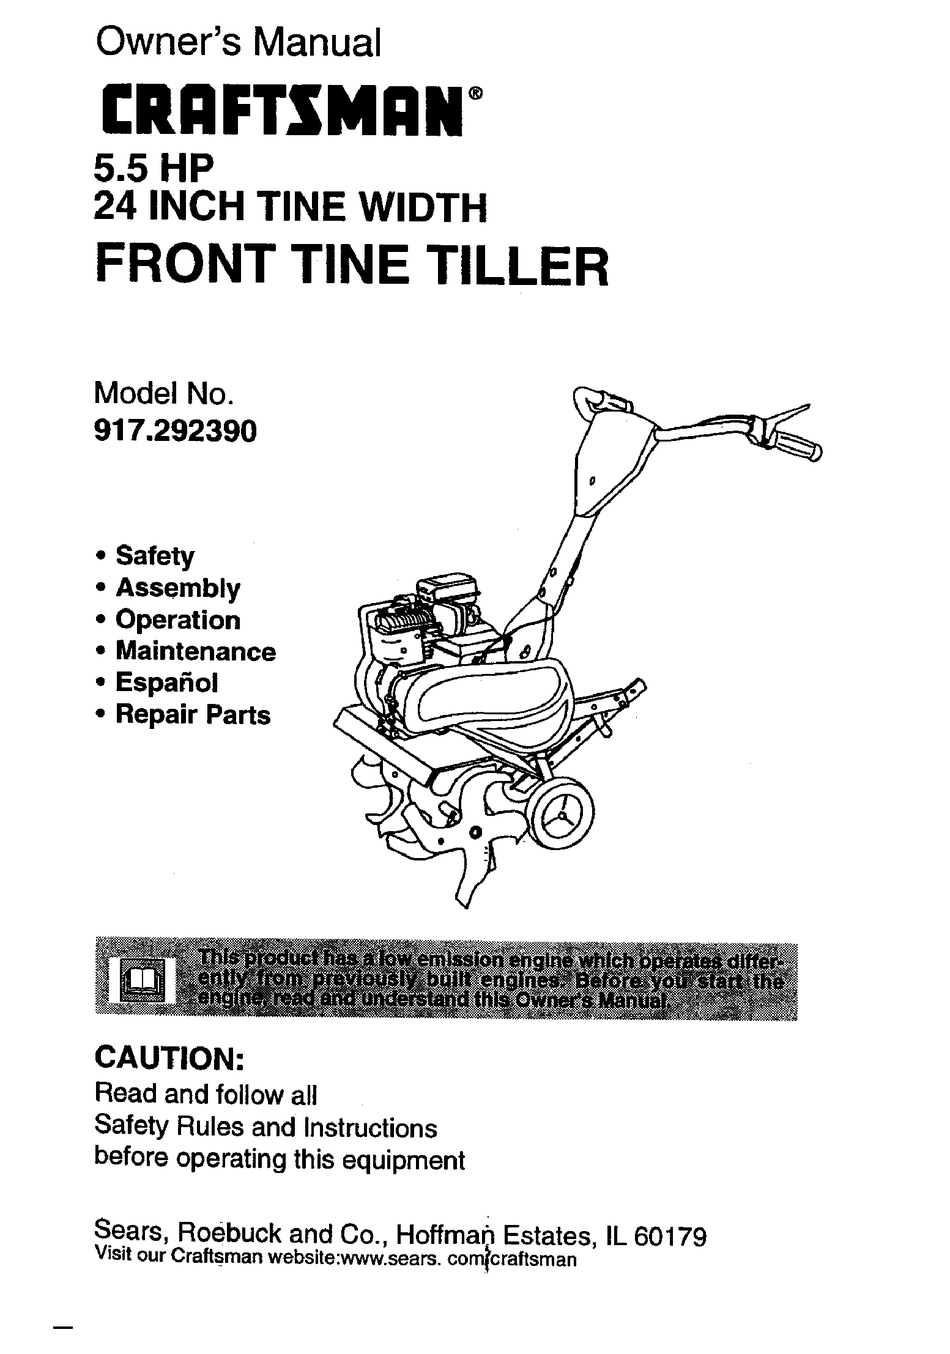 Craftsman Front Tine Tiller 917 29239 Owner S Manual Pdf Download Manualslib